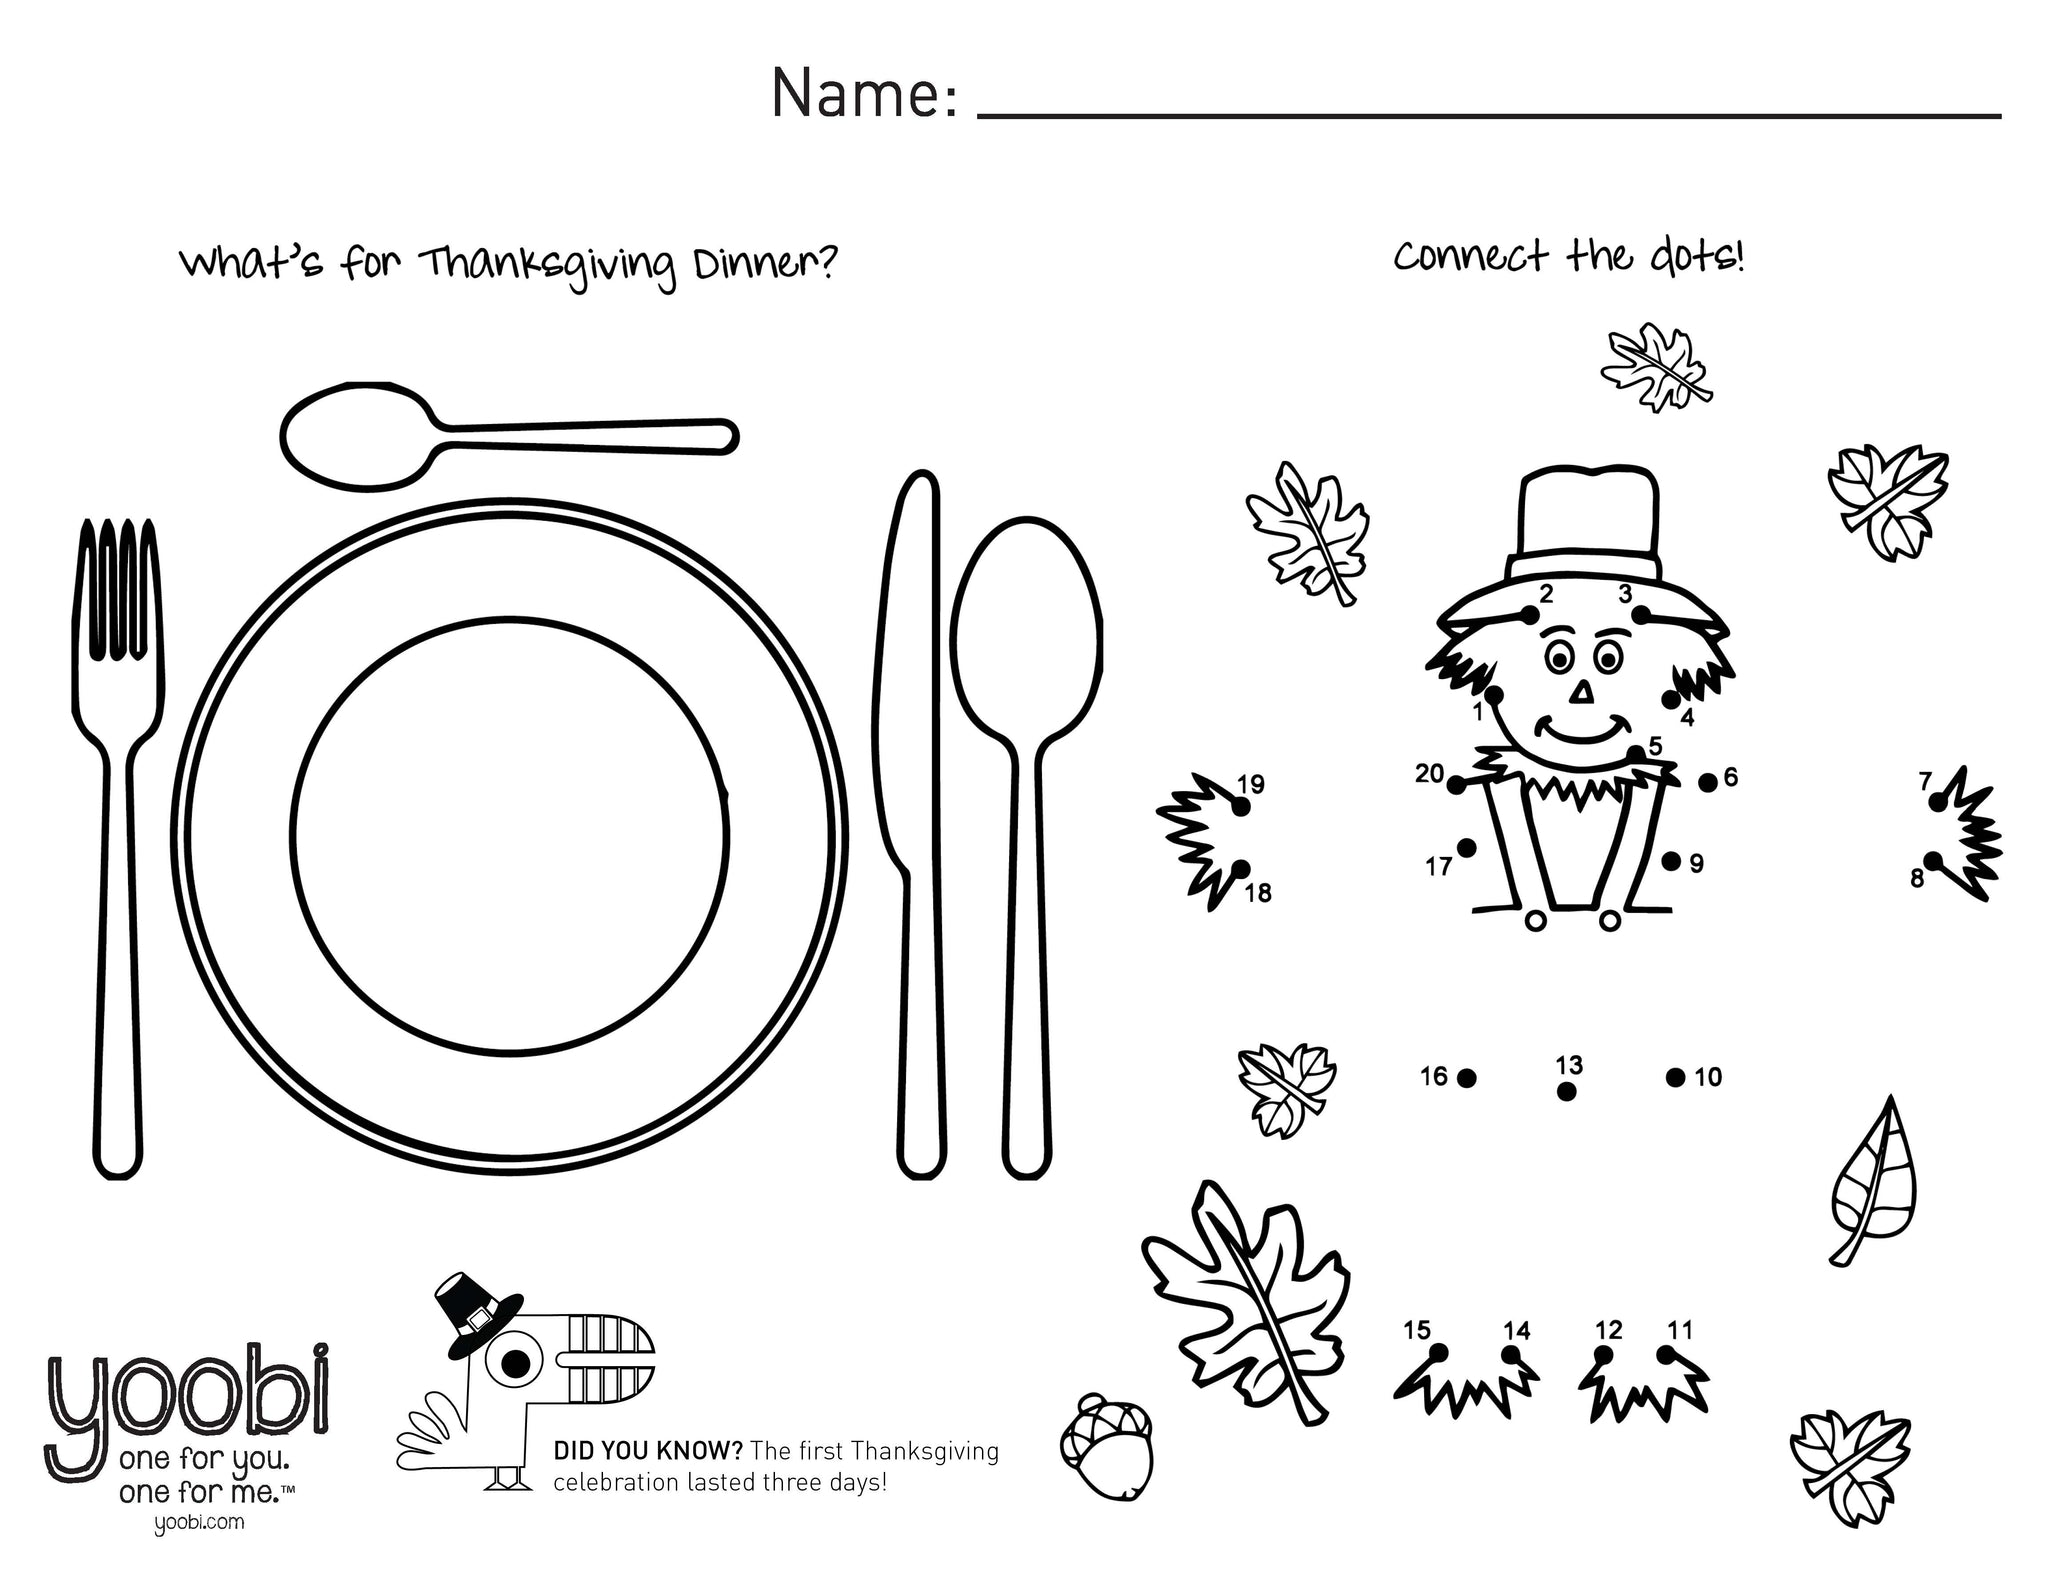 Holiday Activity Sheets - Yoobi